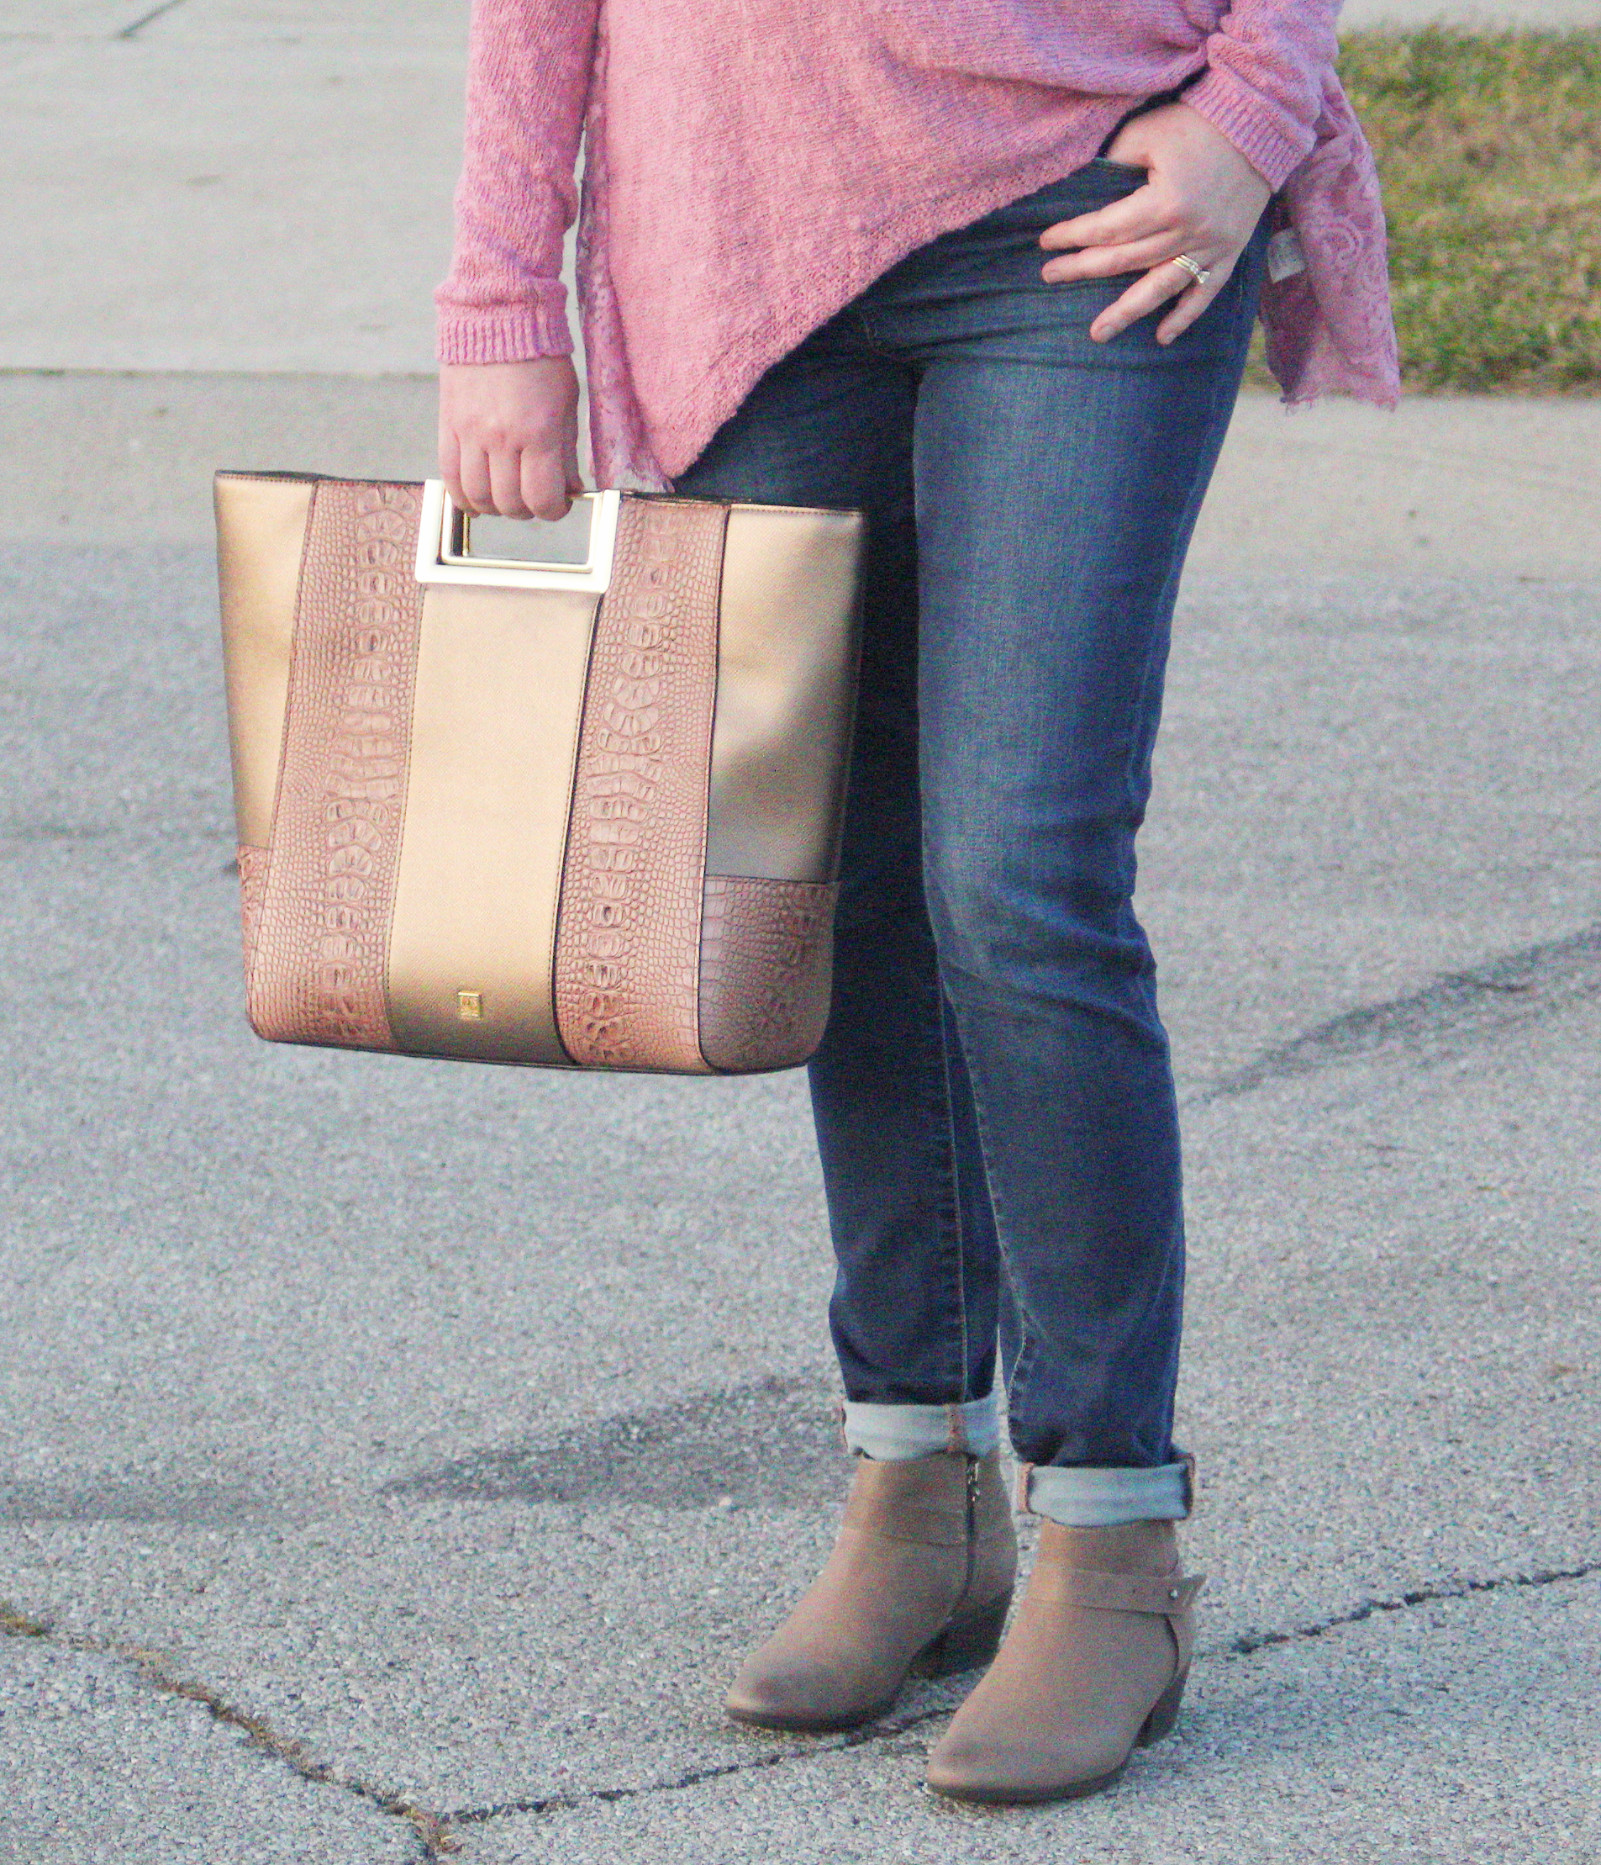 Kate Landry Handbag And Pink Sweater